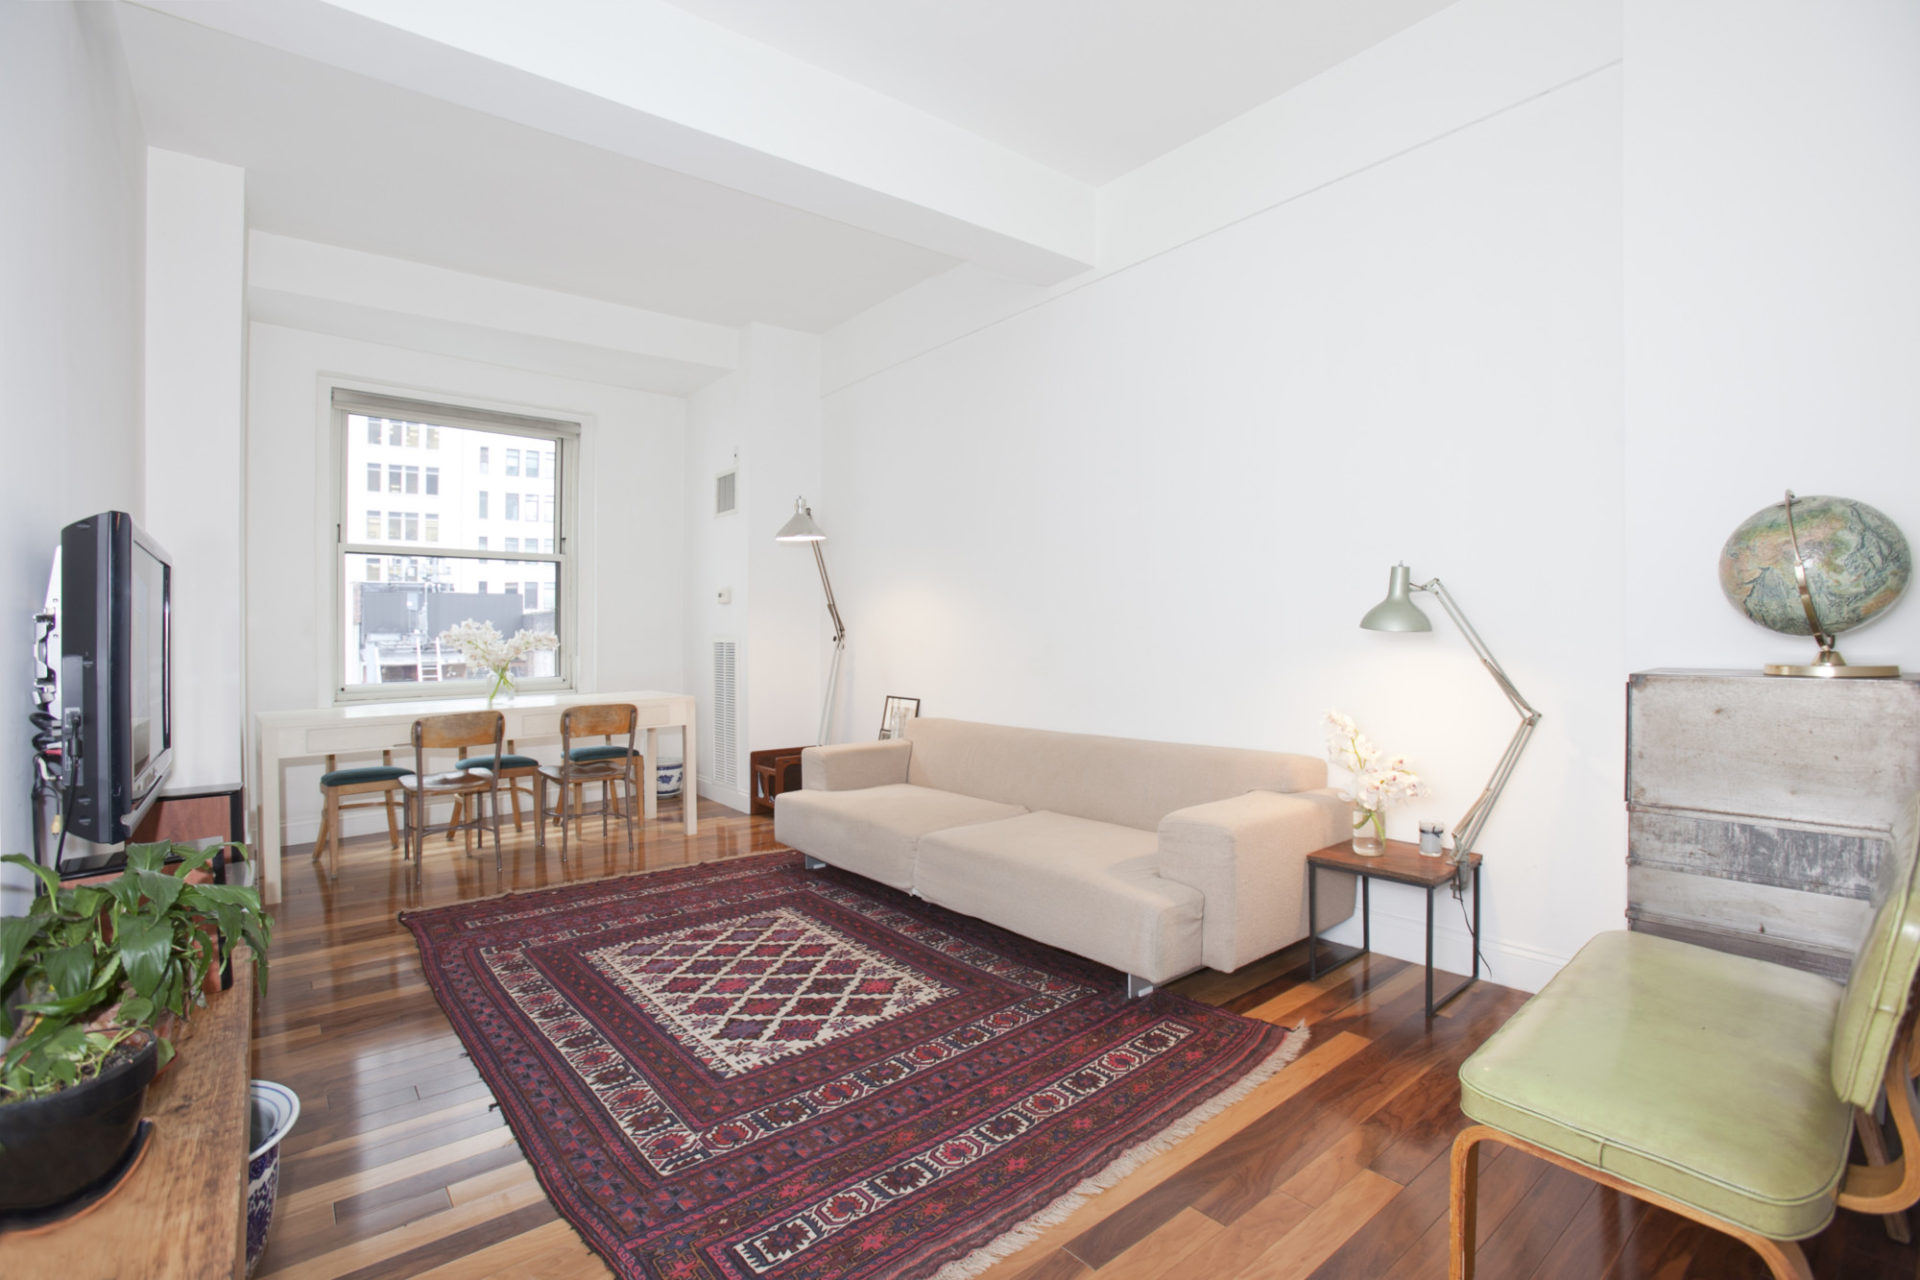 How Long Should You Own an Apartment Before Selling?